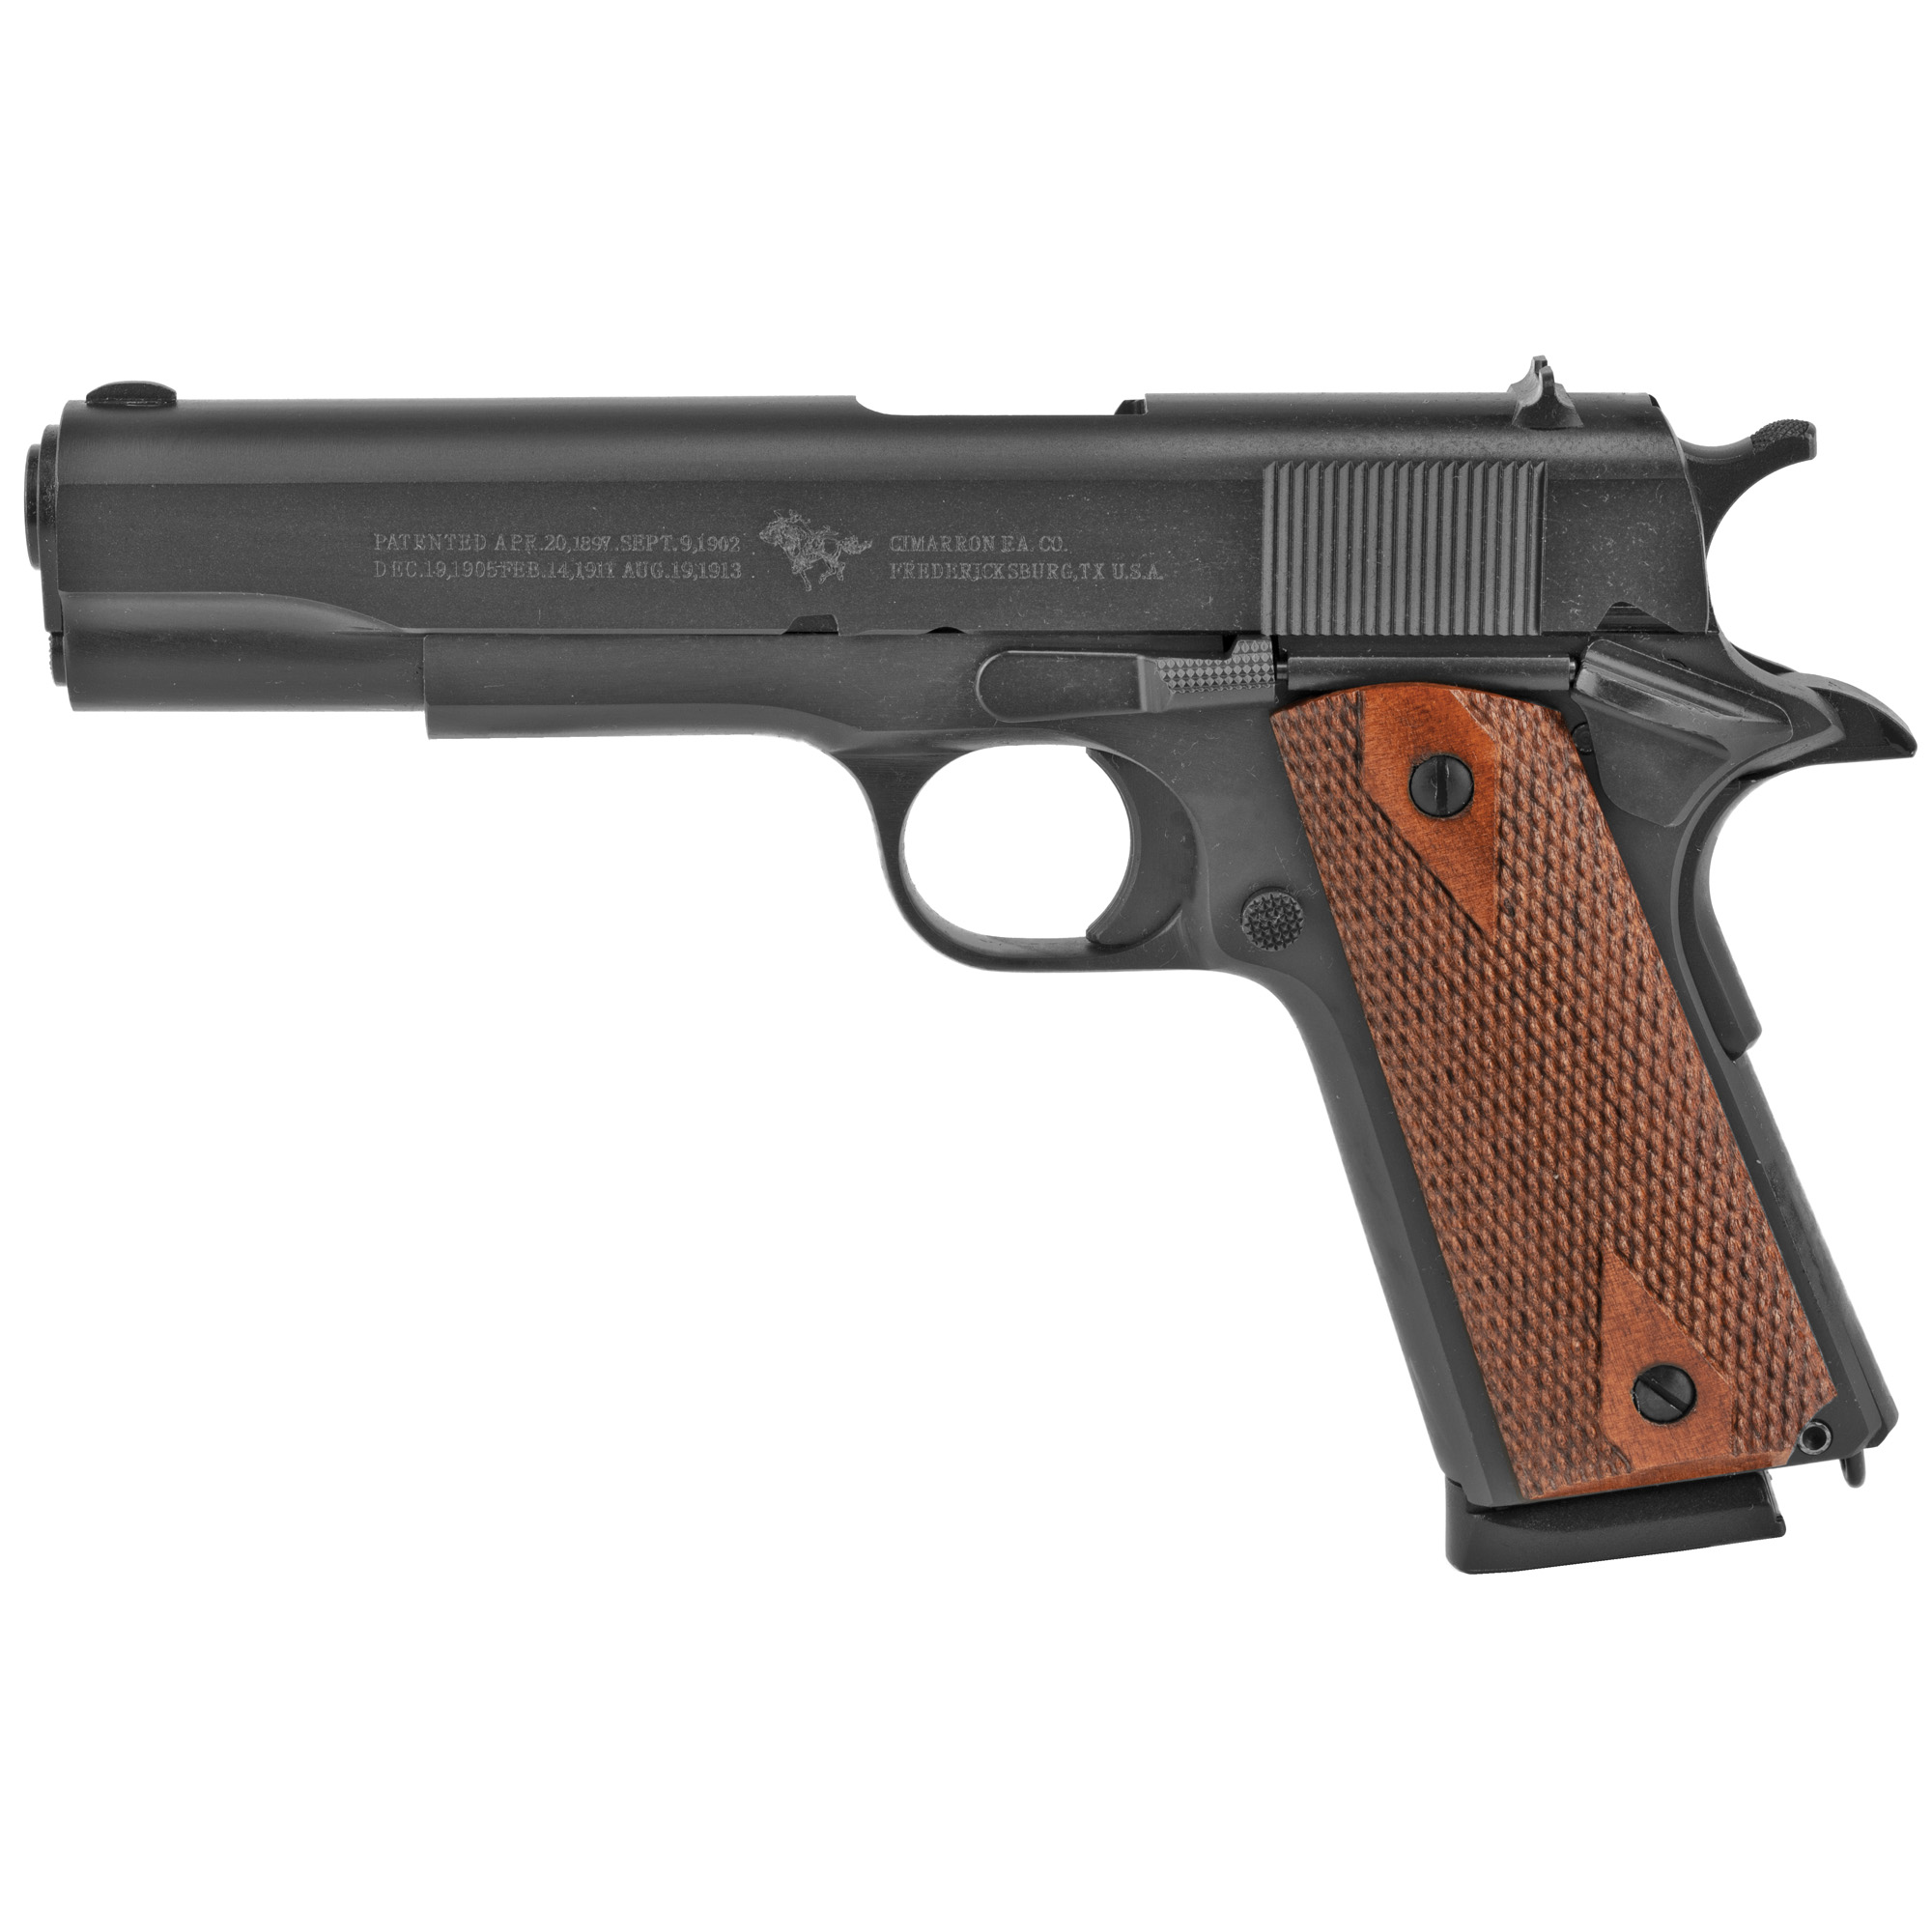 "The 1911 is a model favored by gun enthusiasts of many varieties. It was the standard issue side arm for the U.S. Armed Forces from 1911 to 1986. This firearm is the next logical step for Cimarron; as this was the next generation of firearm used en masse in World War I. The Cimarron 1911 has the correct historical markings"" the original 1911 frame with a Type 1 smooth mainspring housing. It has a lifetime warranty and is Colt parts compliant."